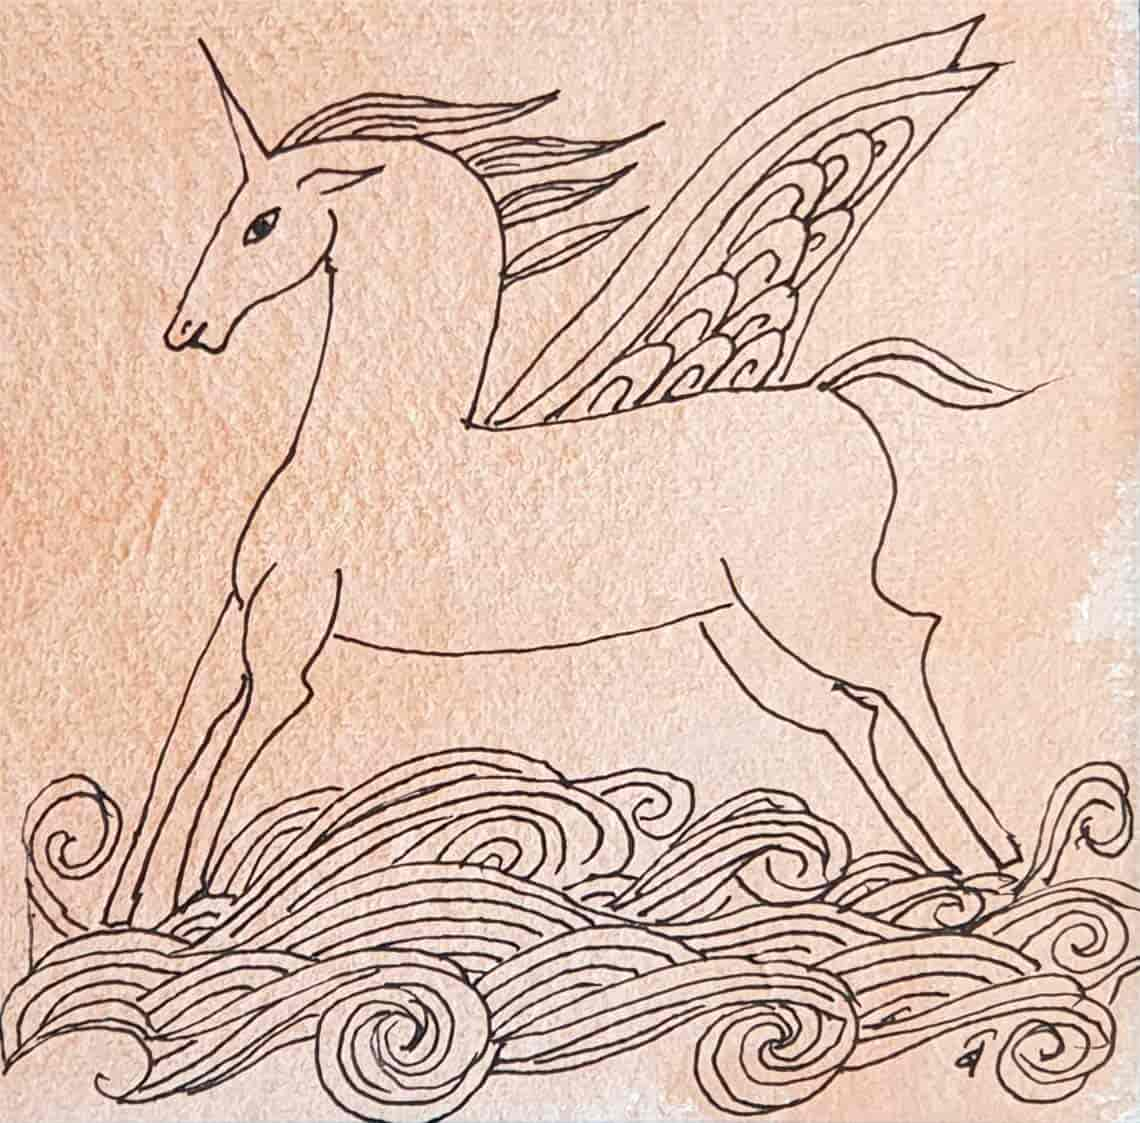 the-winged-unicorn-drawing-pen-watercolour-on-paper-5×5-inches-2008-min